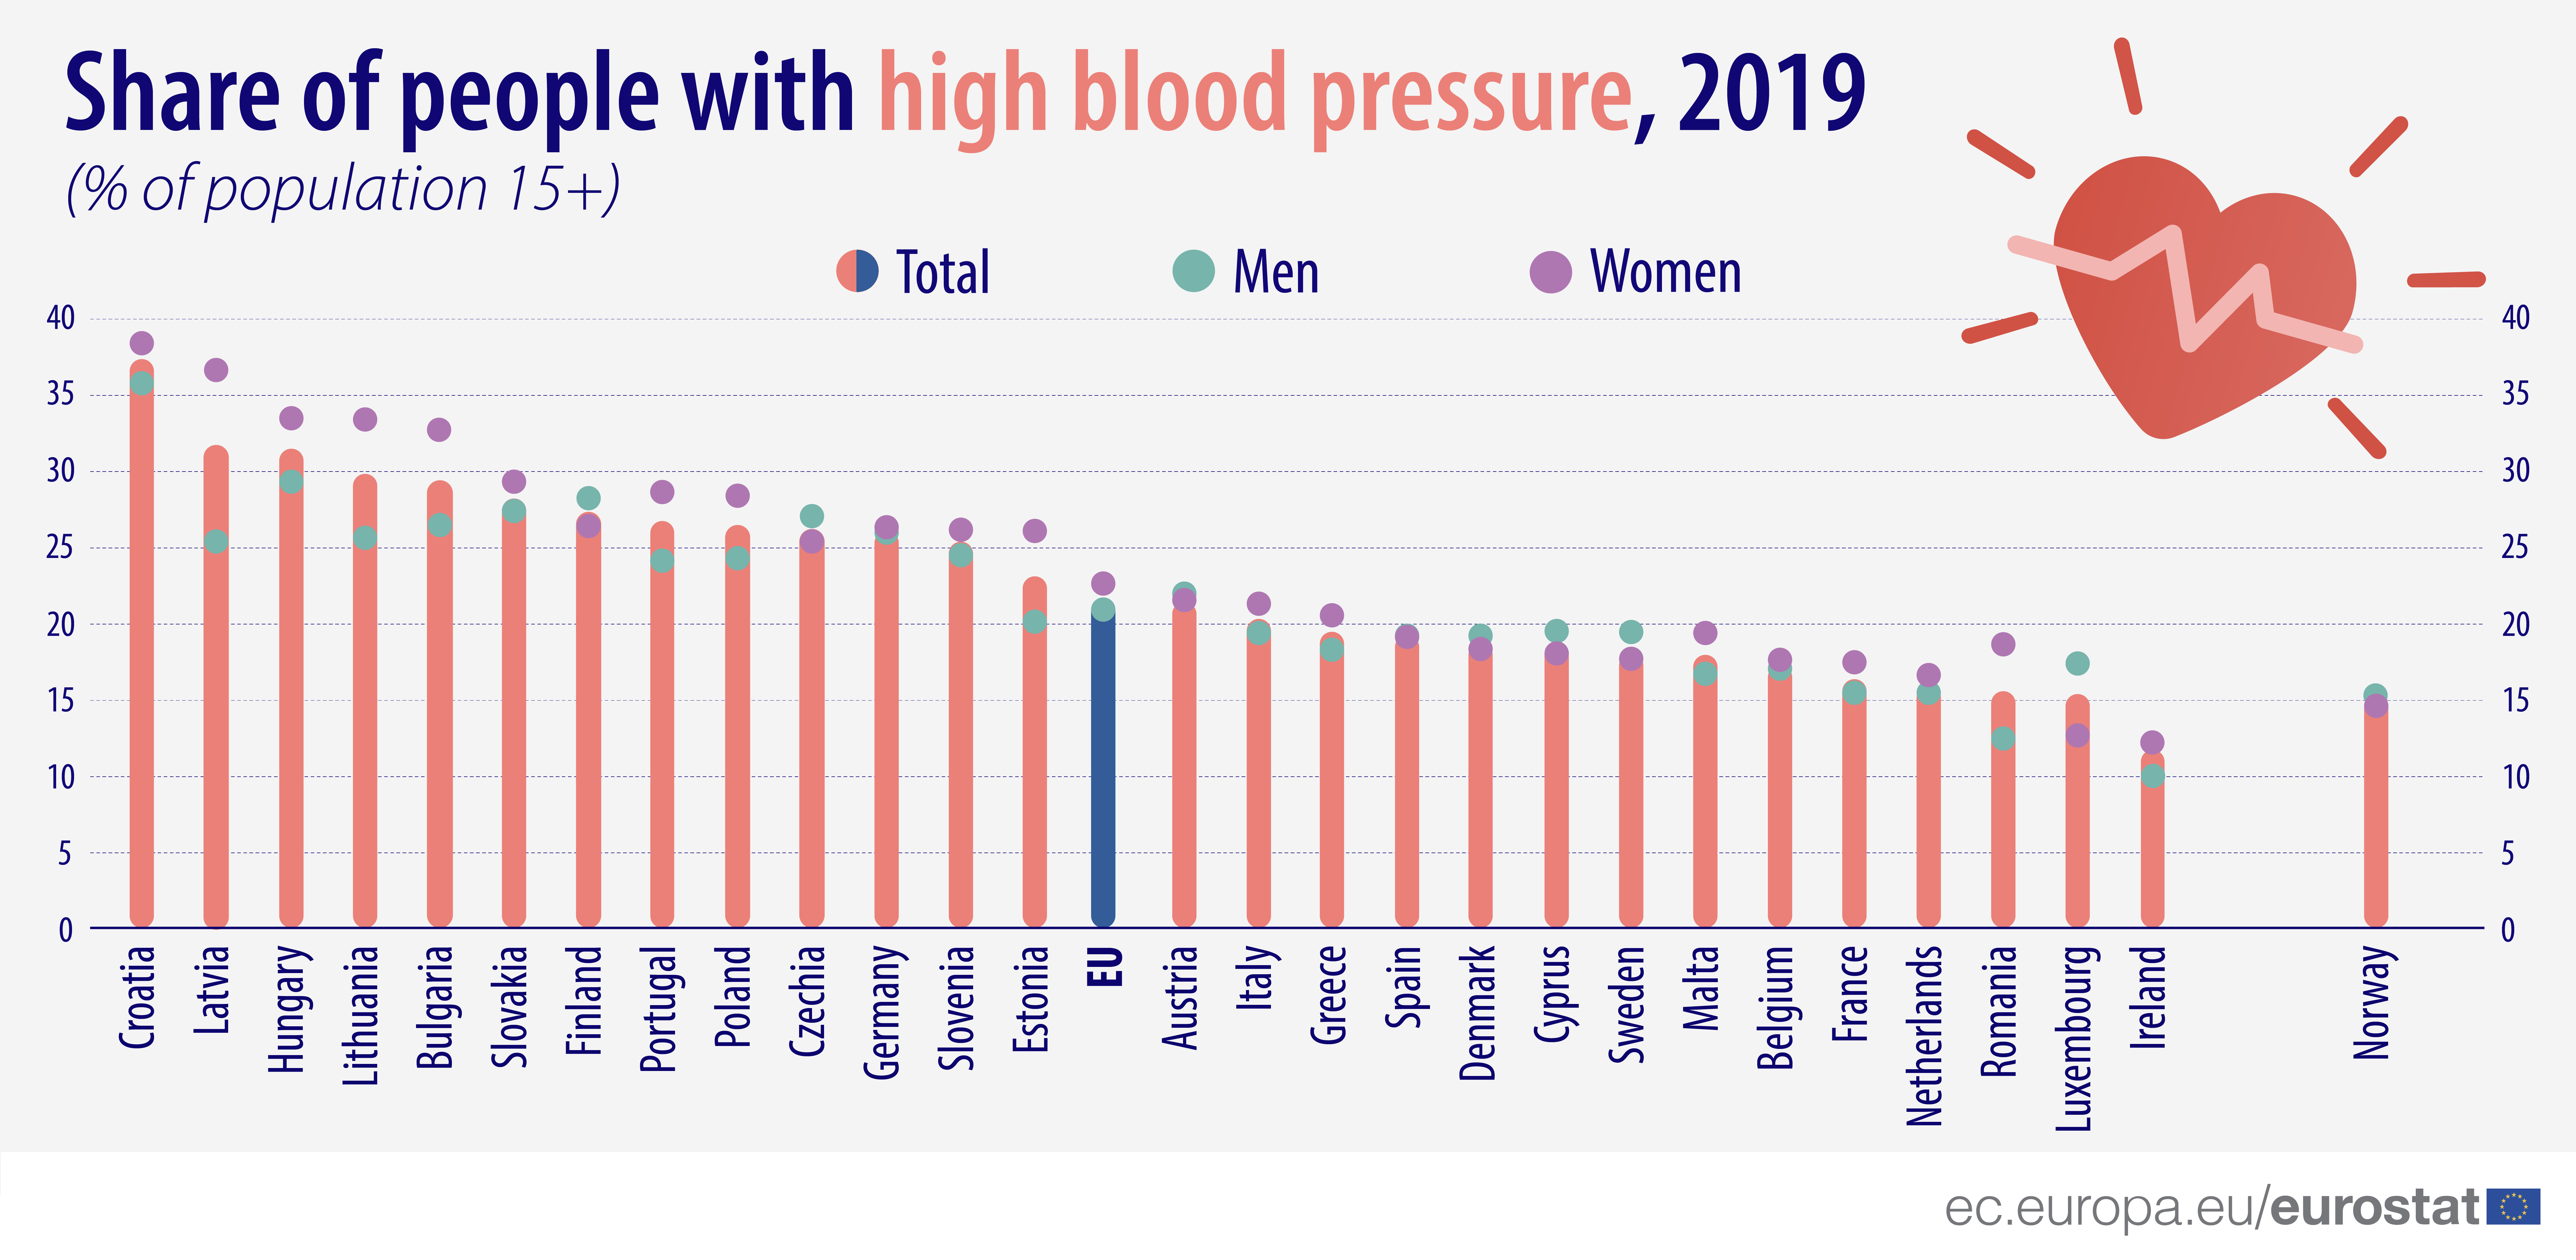 Bar graph: Share of people with high blood pressure 2019, % of population 15+, showing the total amount as well as by sex